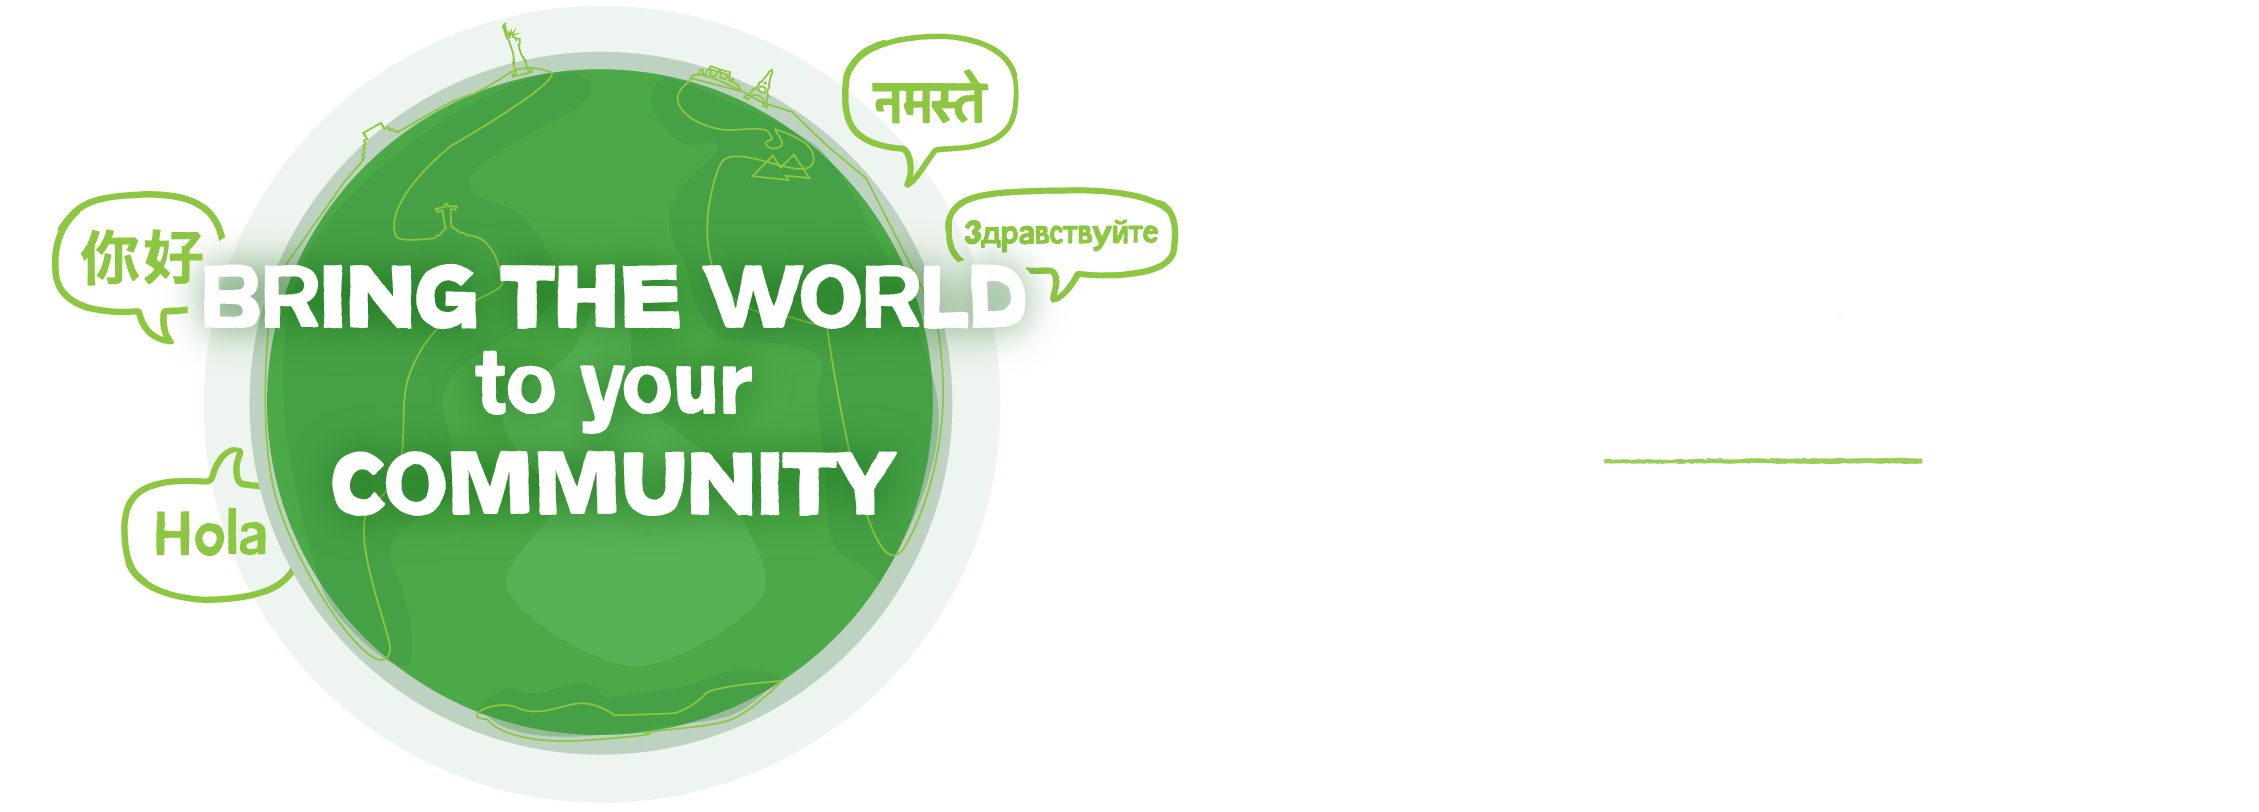 Bring the world to your community PLA 2018 header